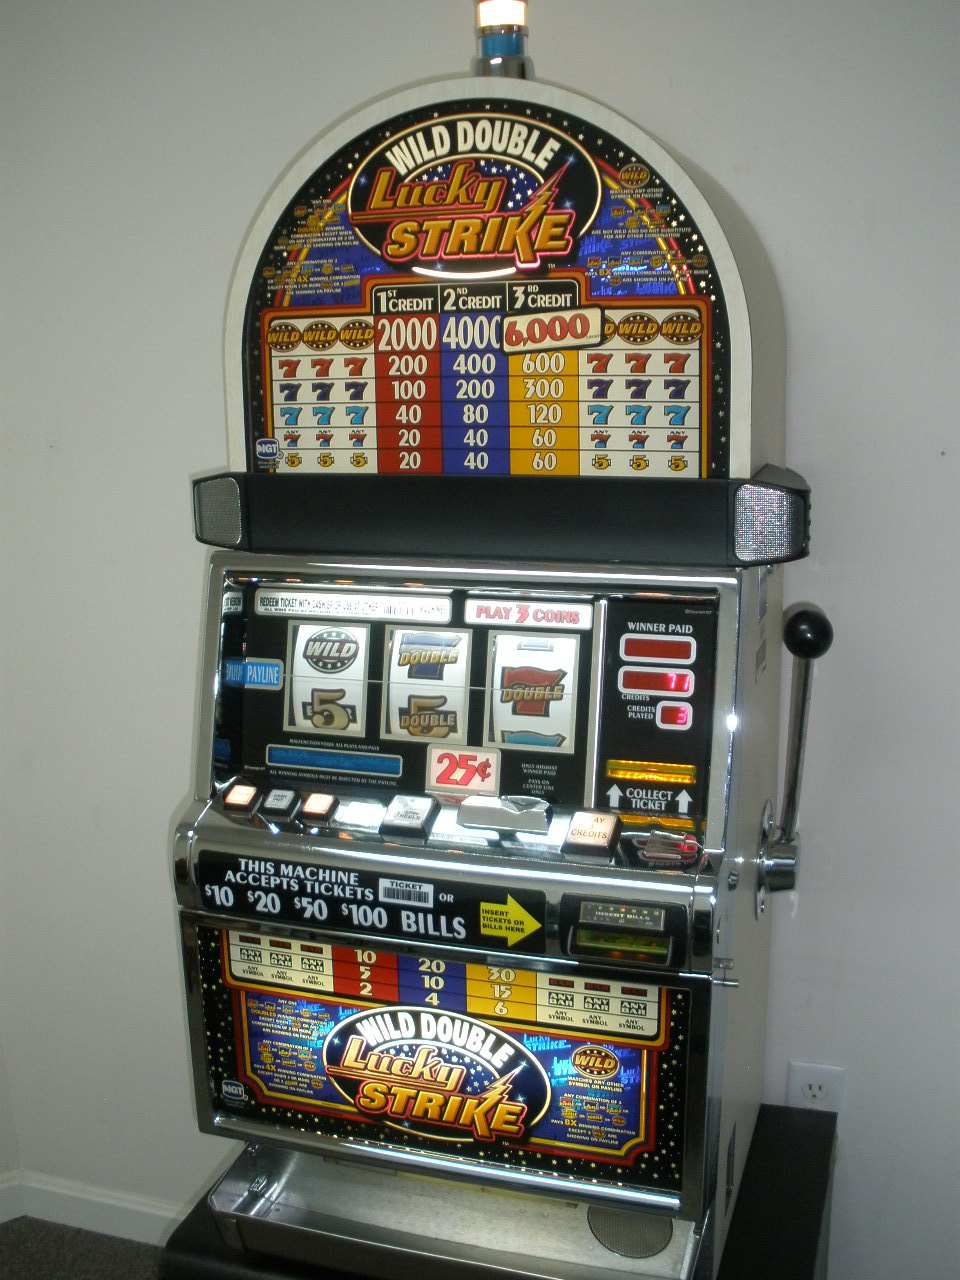 IGT WILD DOUBLE LUCKY STRIKE S2000 SLOT MACHINE WITH